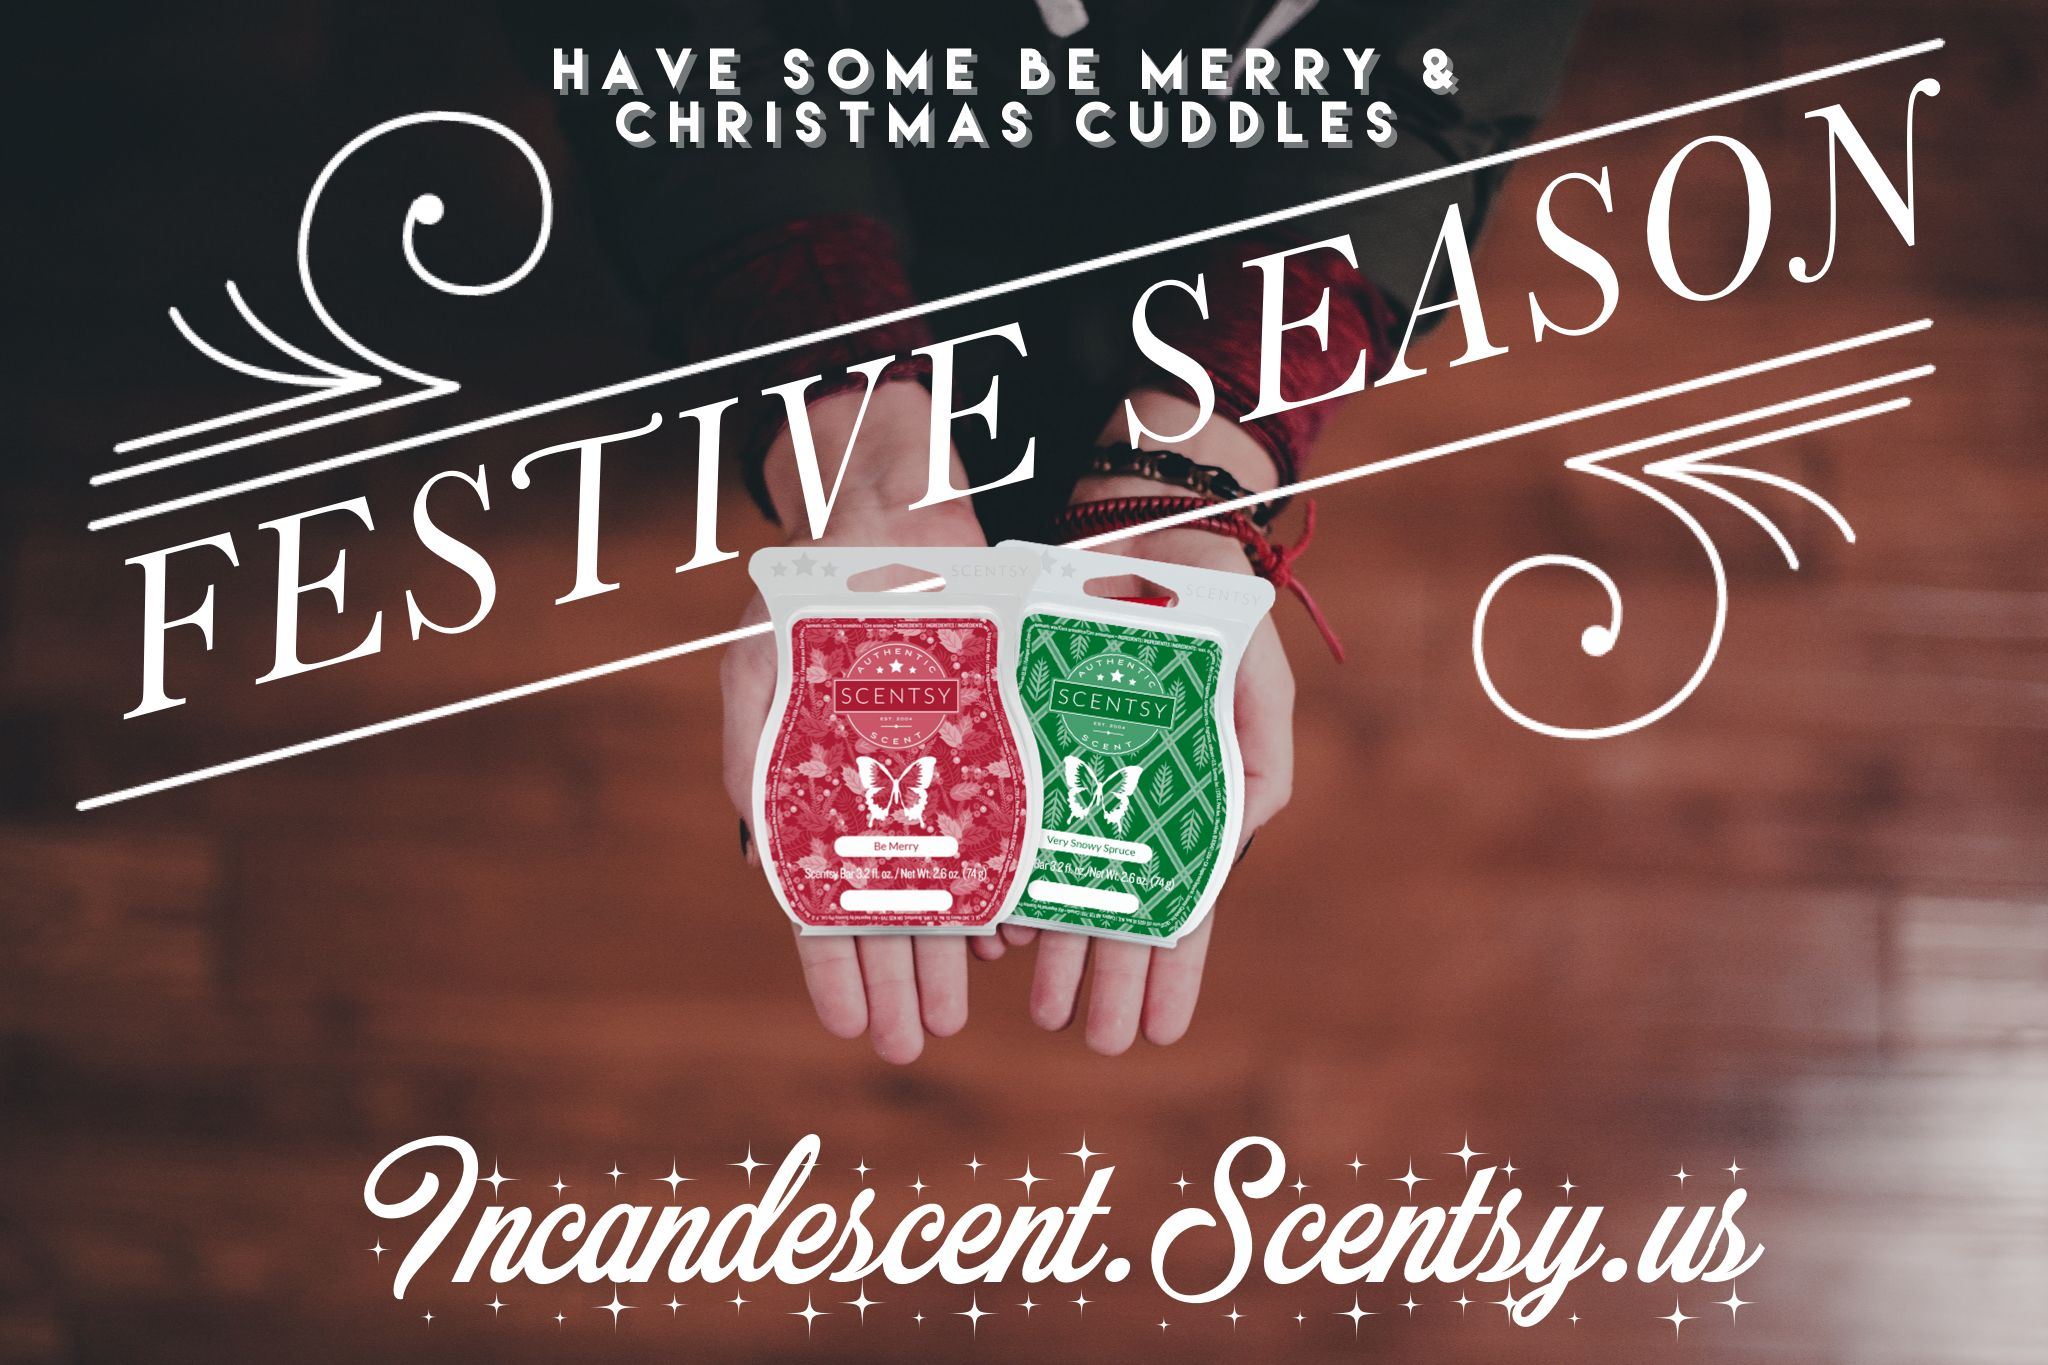 Scentsy Festive Season Scentsy Scentsy Wax Bars Holiday Fragrance